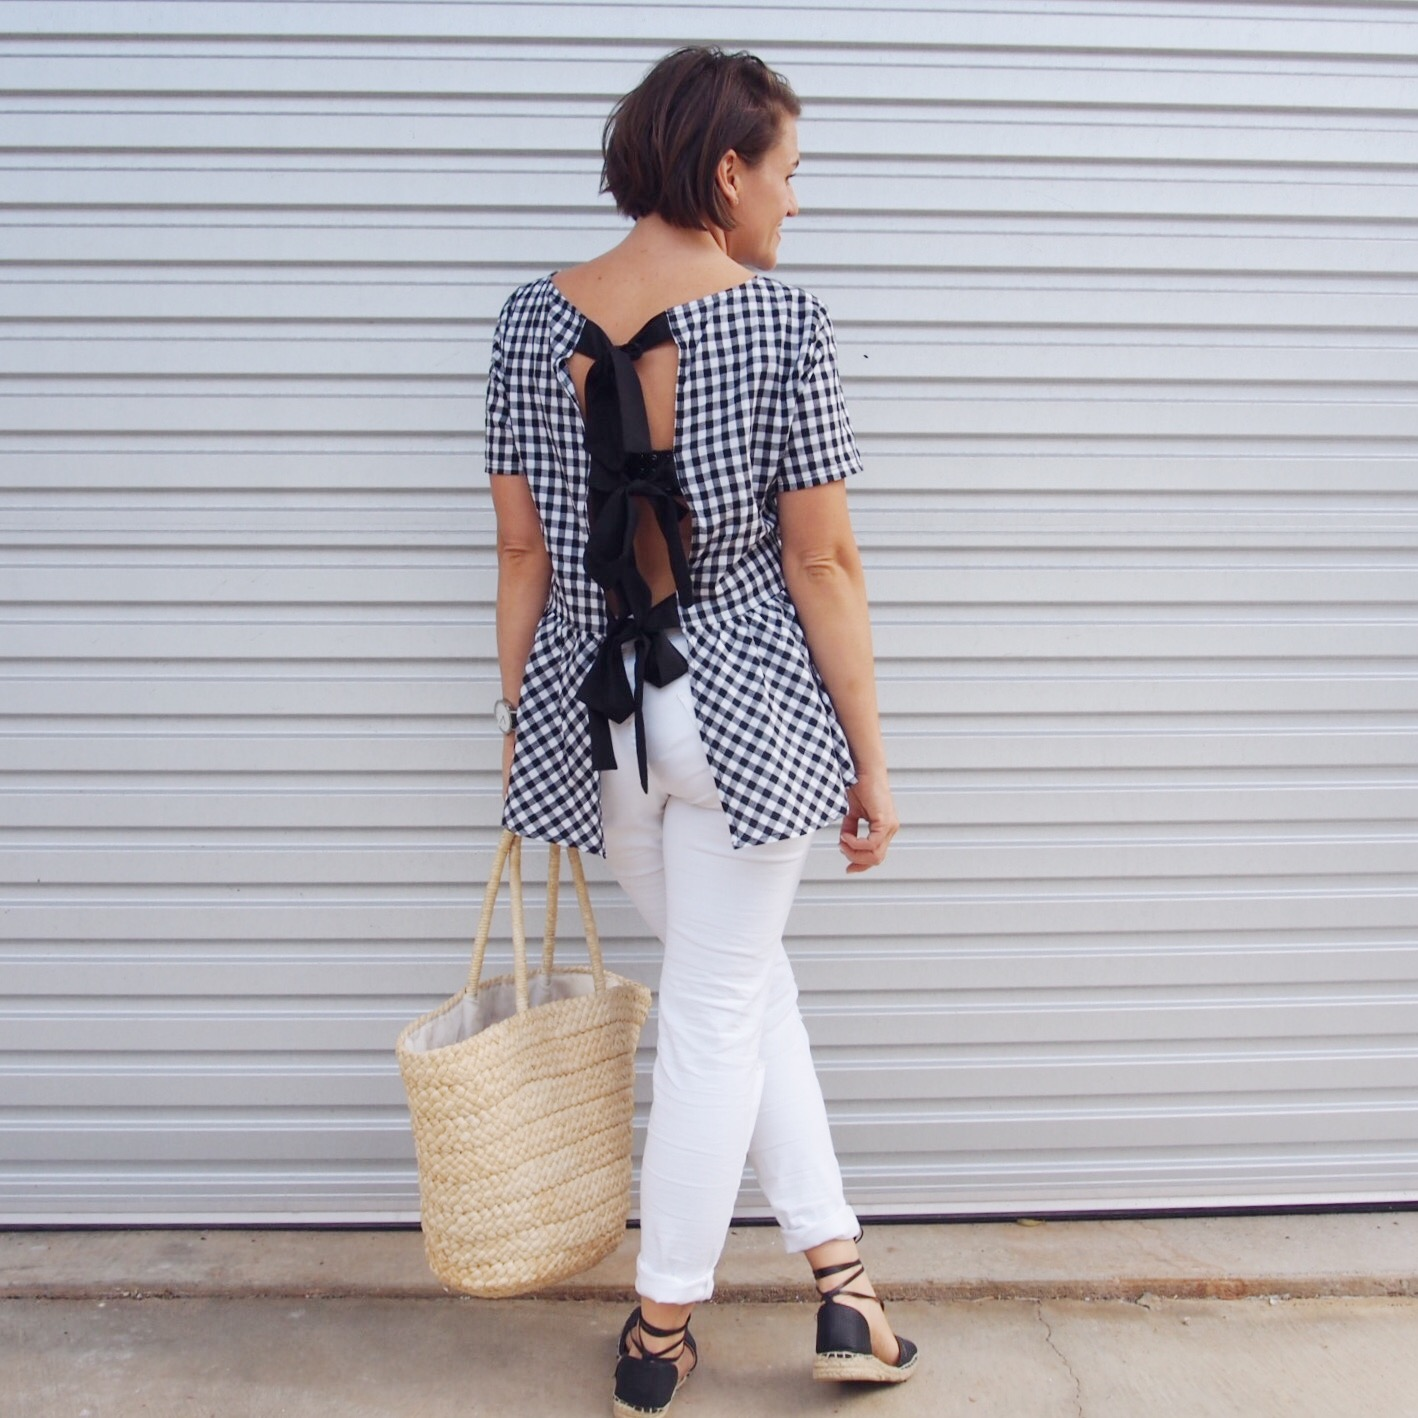 gingham top by shein outfit idea pretty chuffed